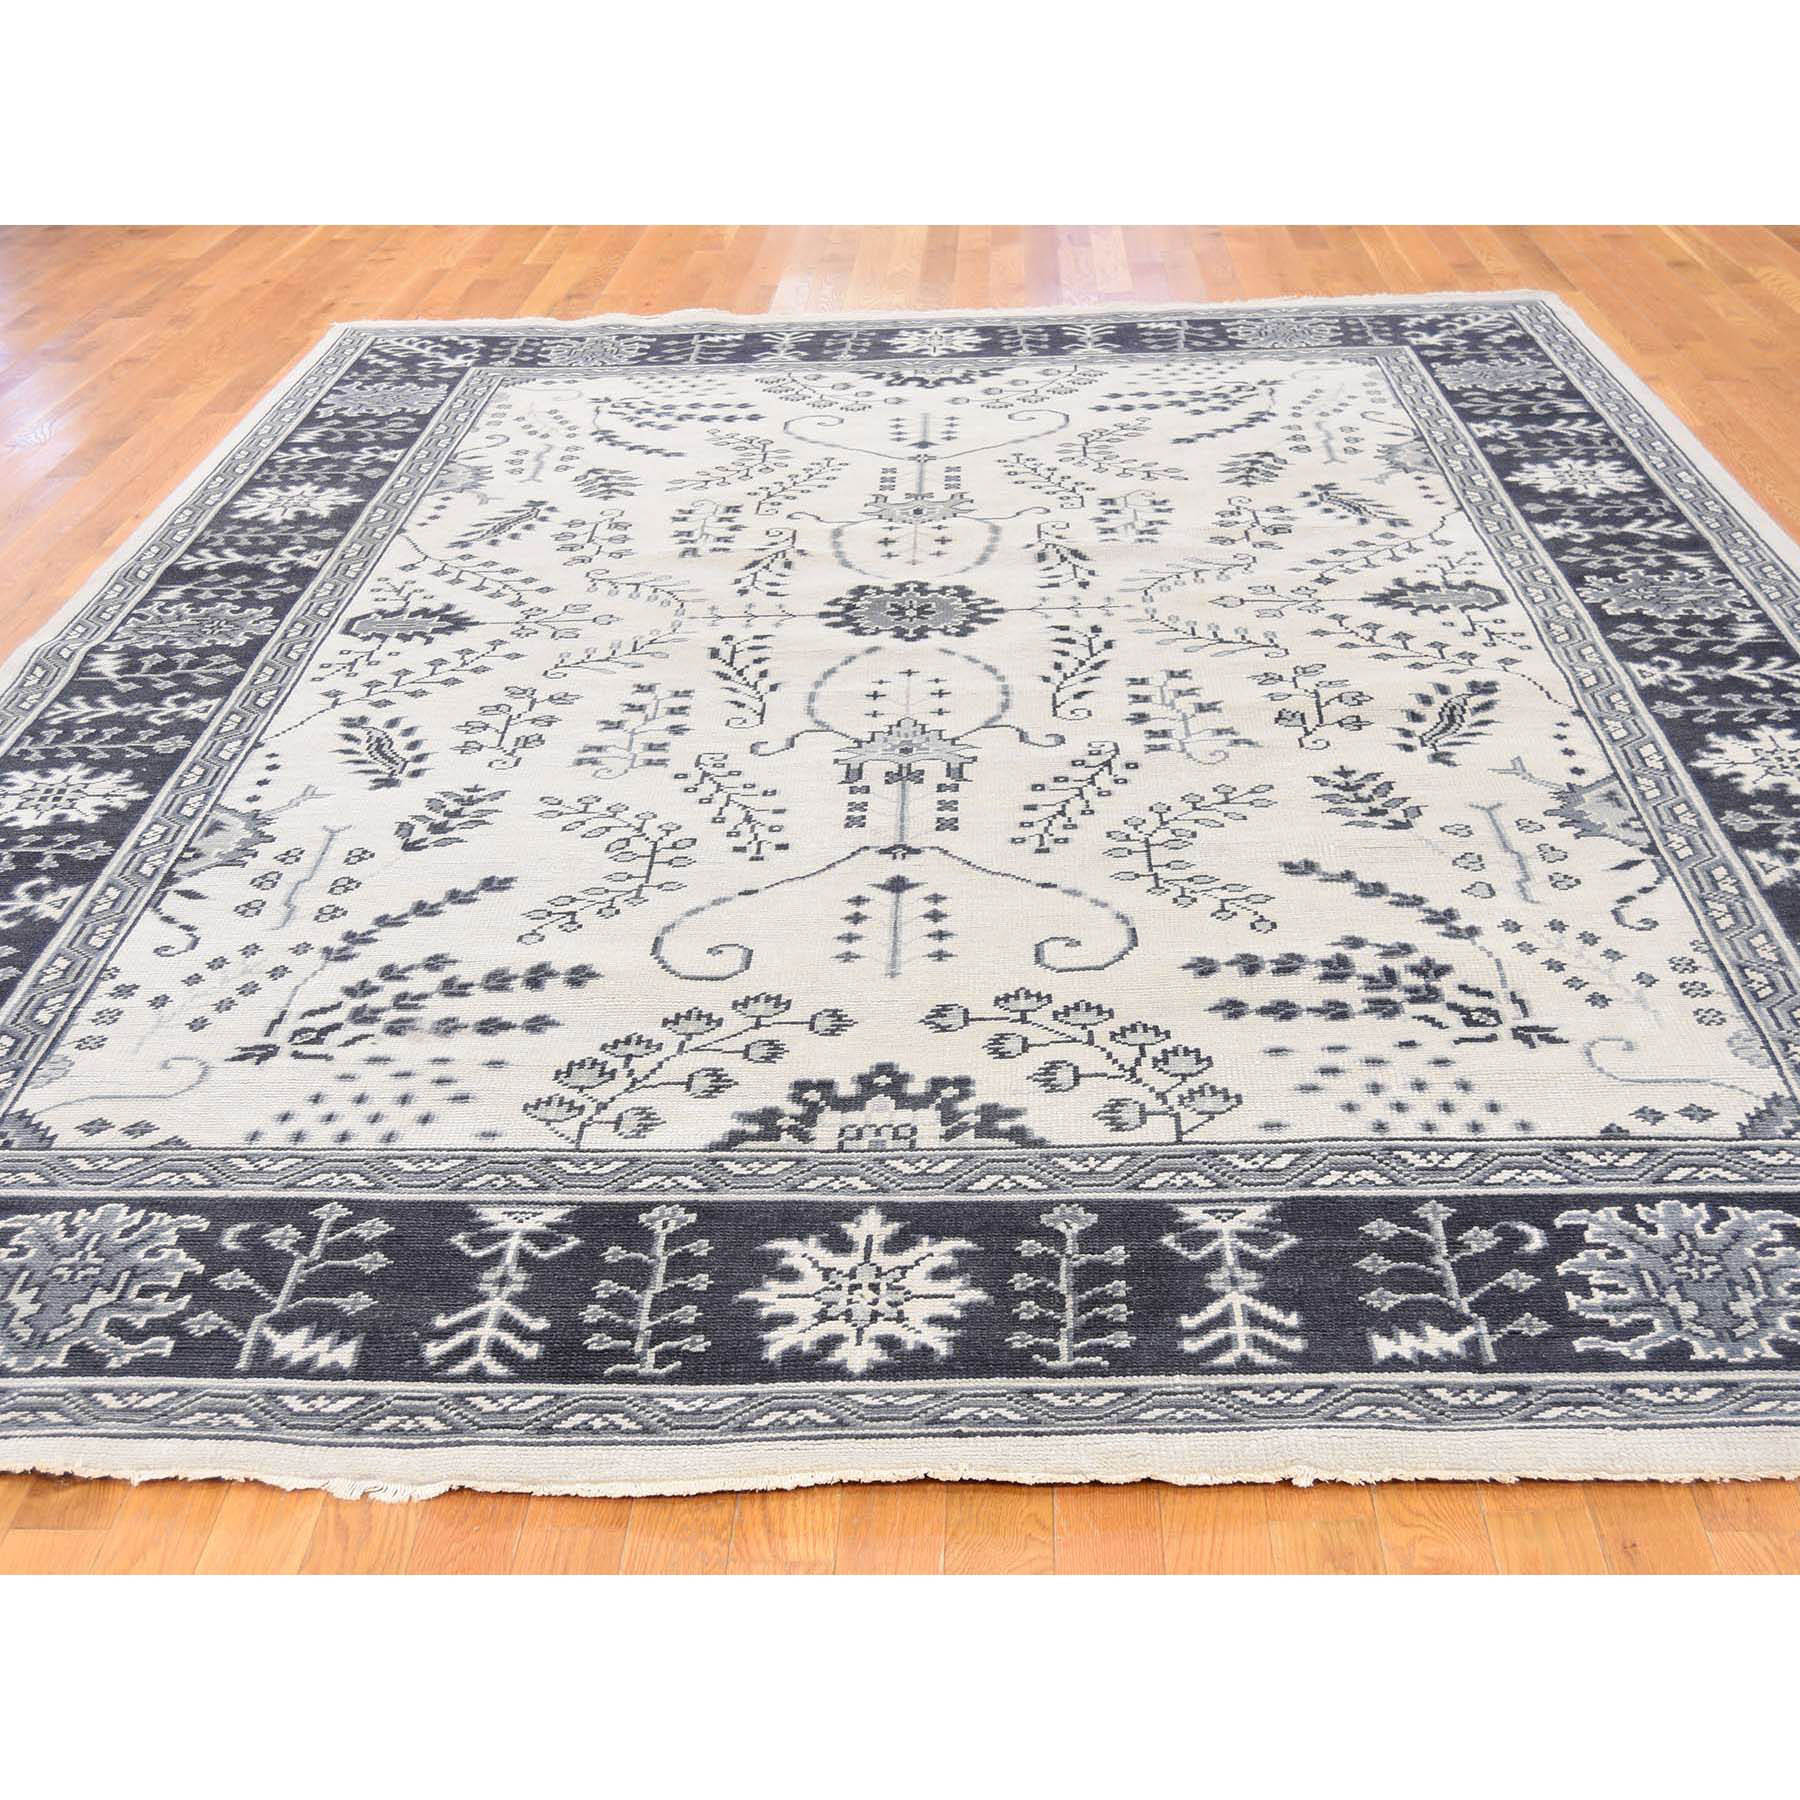 8'x10' Ivory Turkish Knot Oushak Hand Woven Pure Wool Oriental Rug